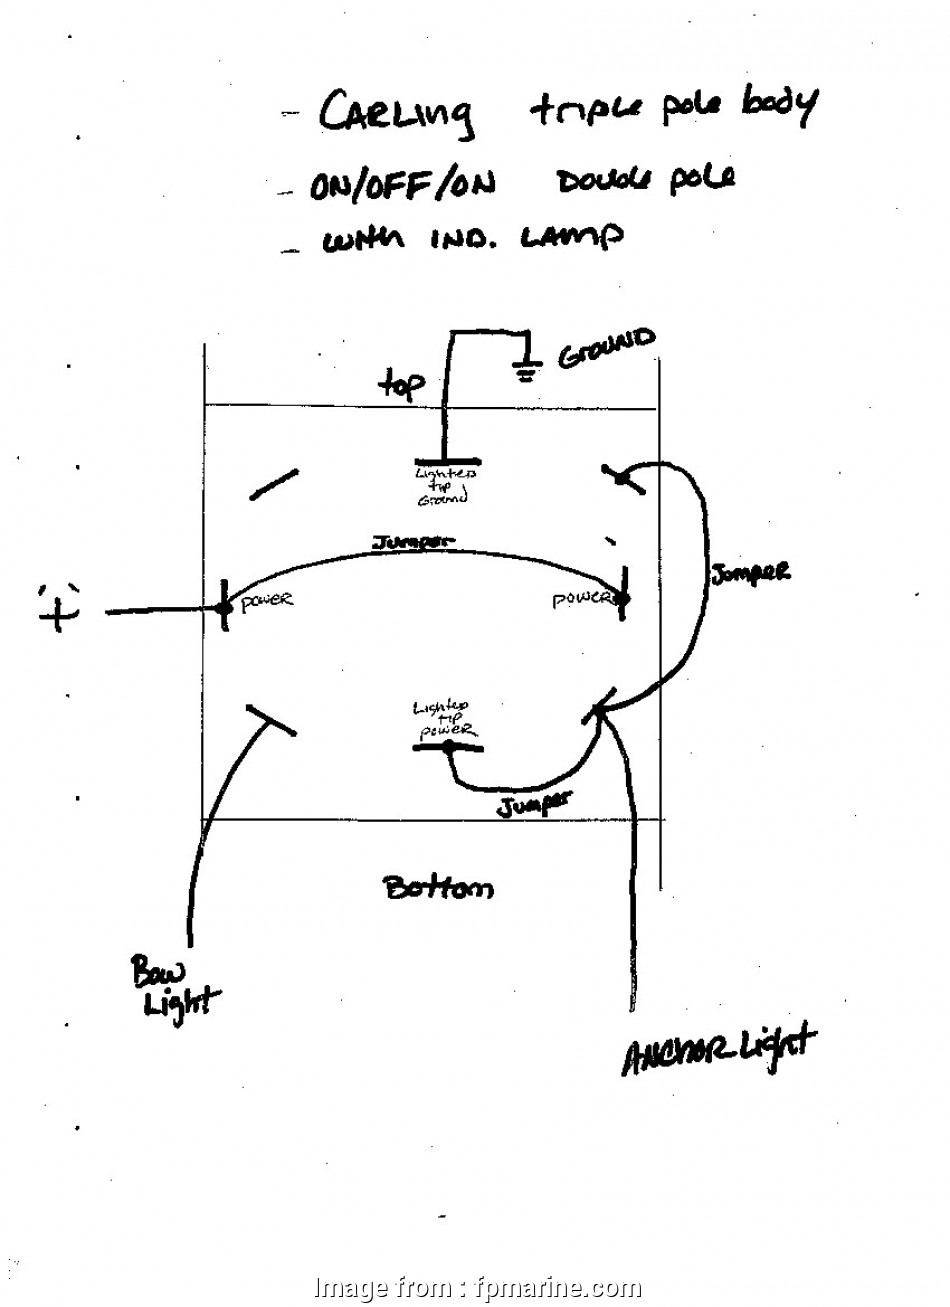 Carling Lt Toggle Switch Wiring Diagram Creative Carling